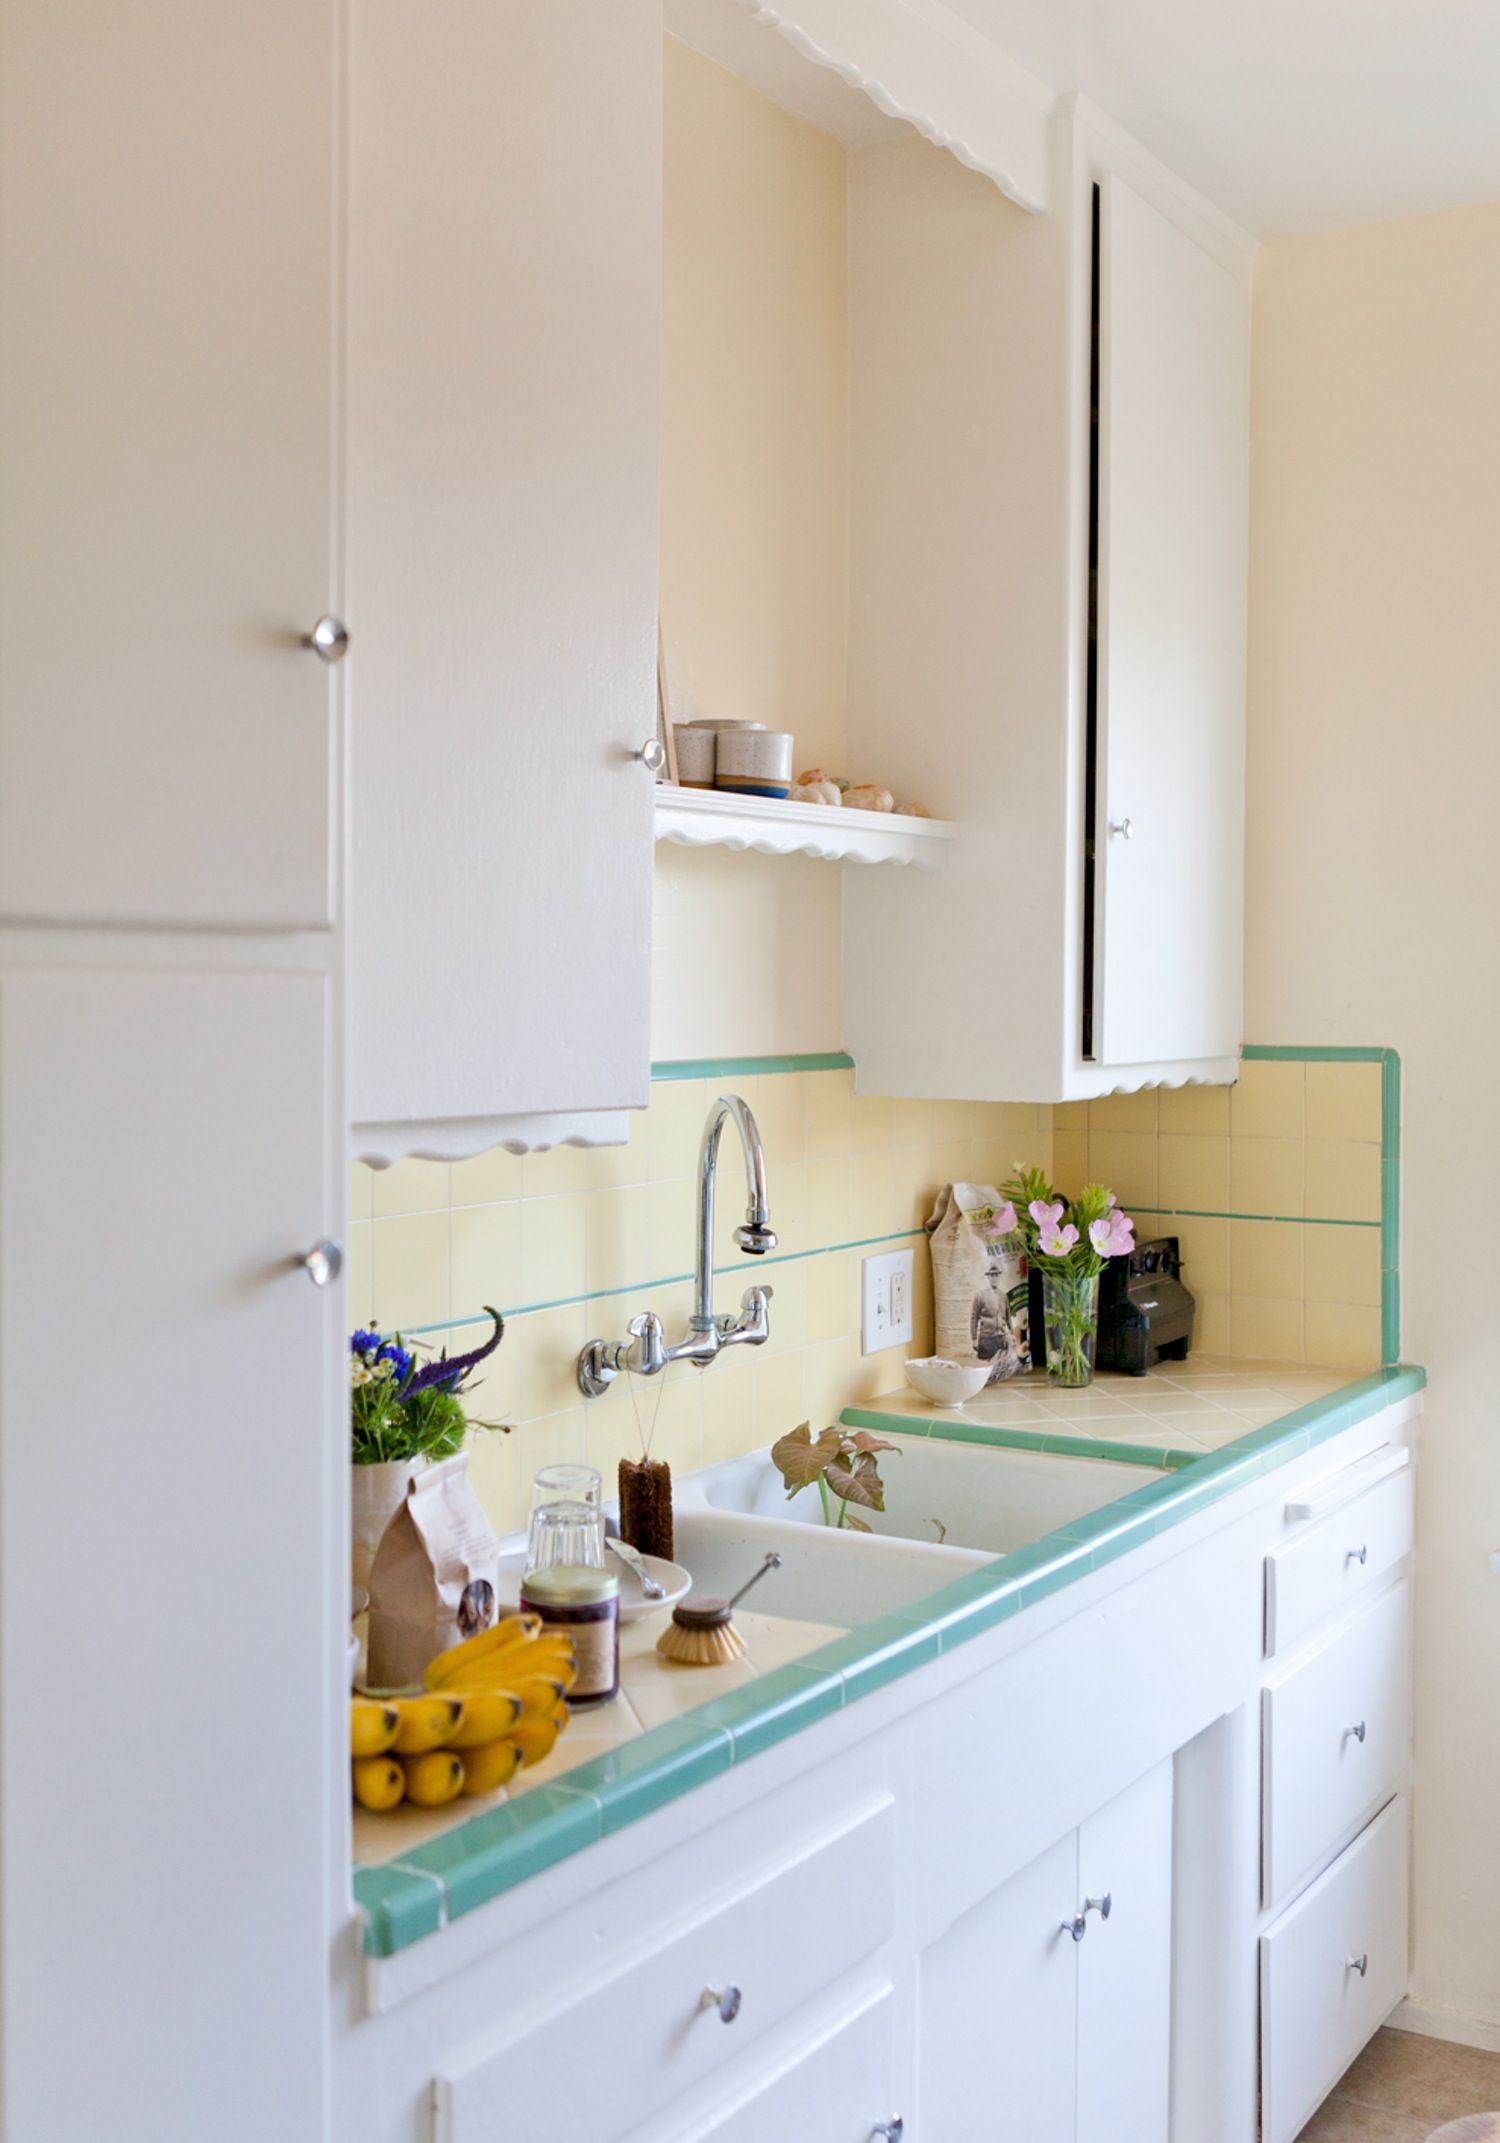 The Best Ways To Get Sticky Cooking Grease Off Cupboards Cupboard - How to clean sticky grease off kitchen cabinets